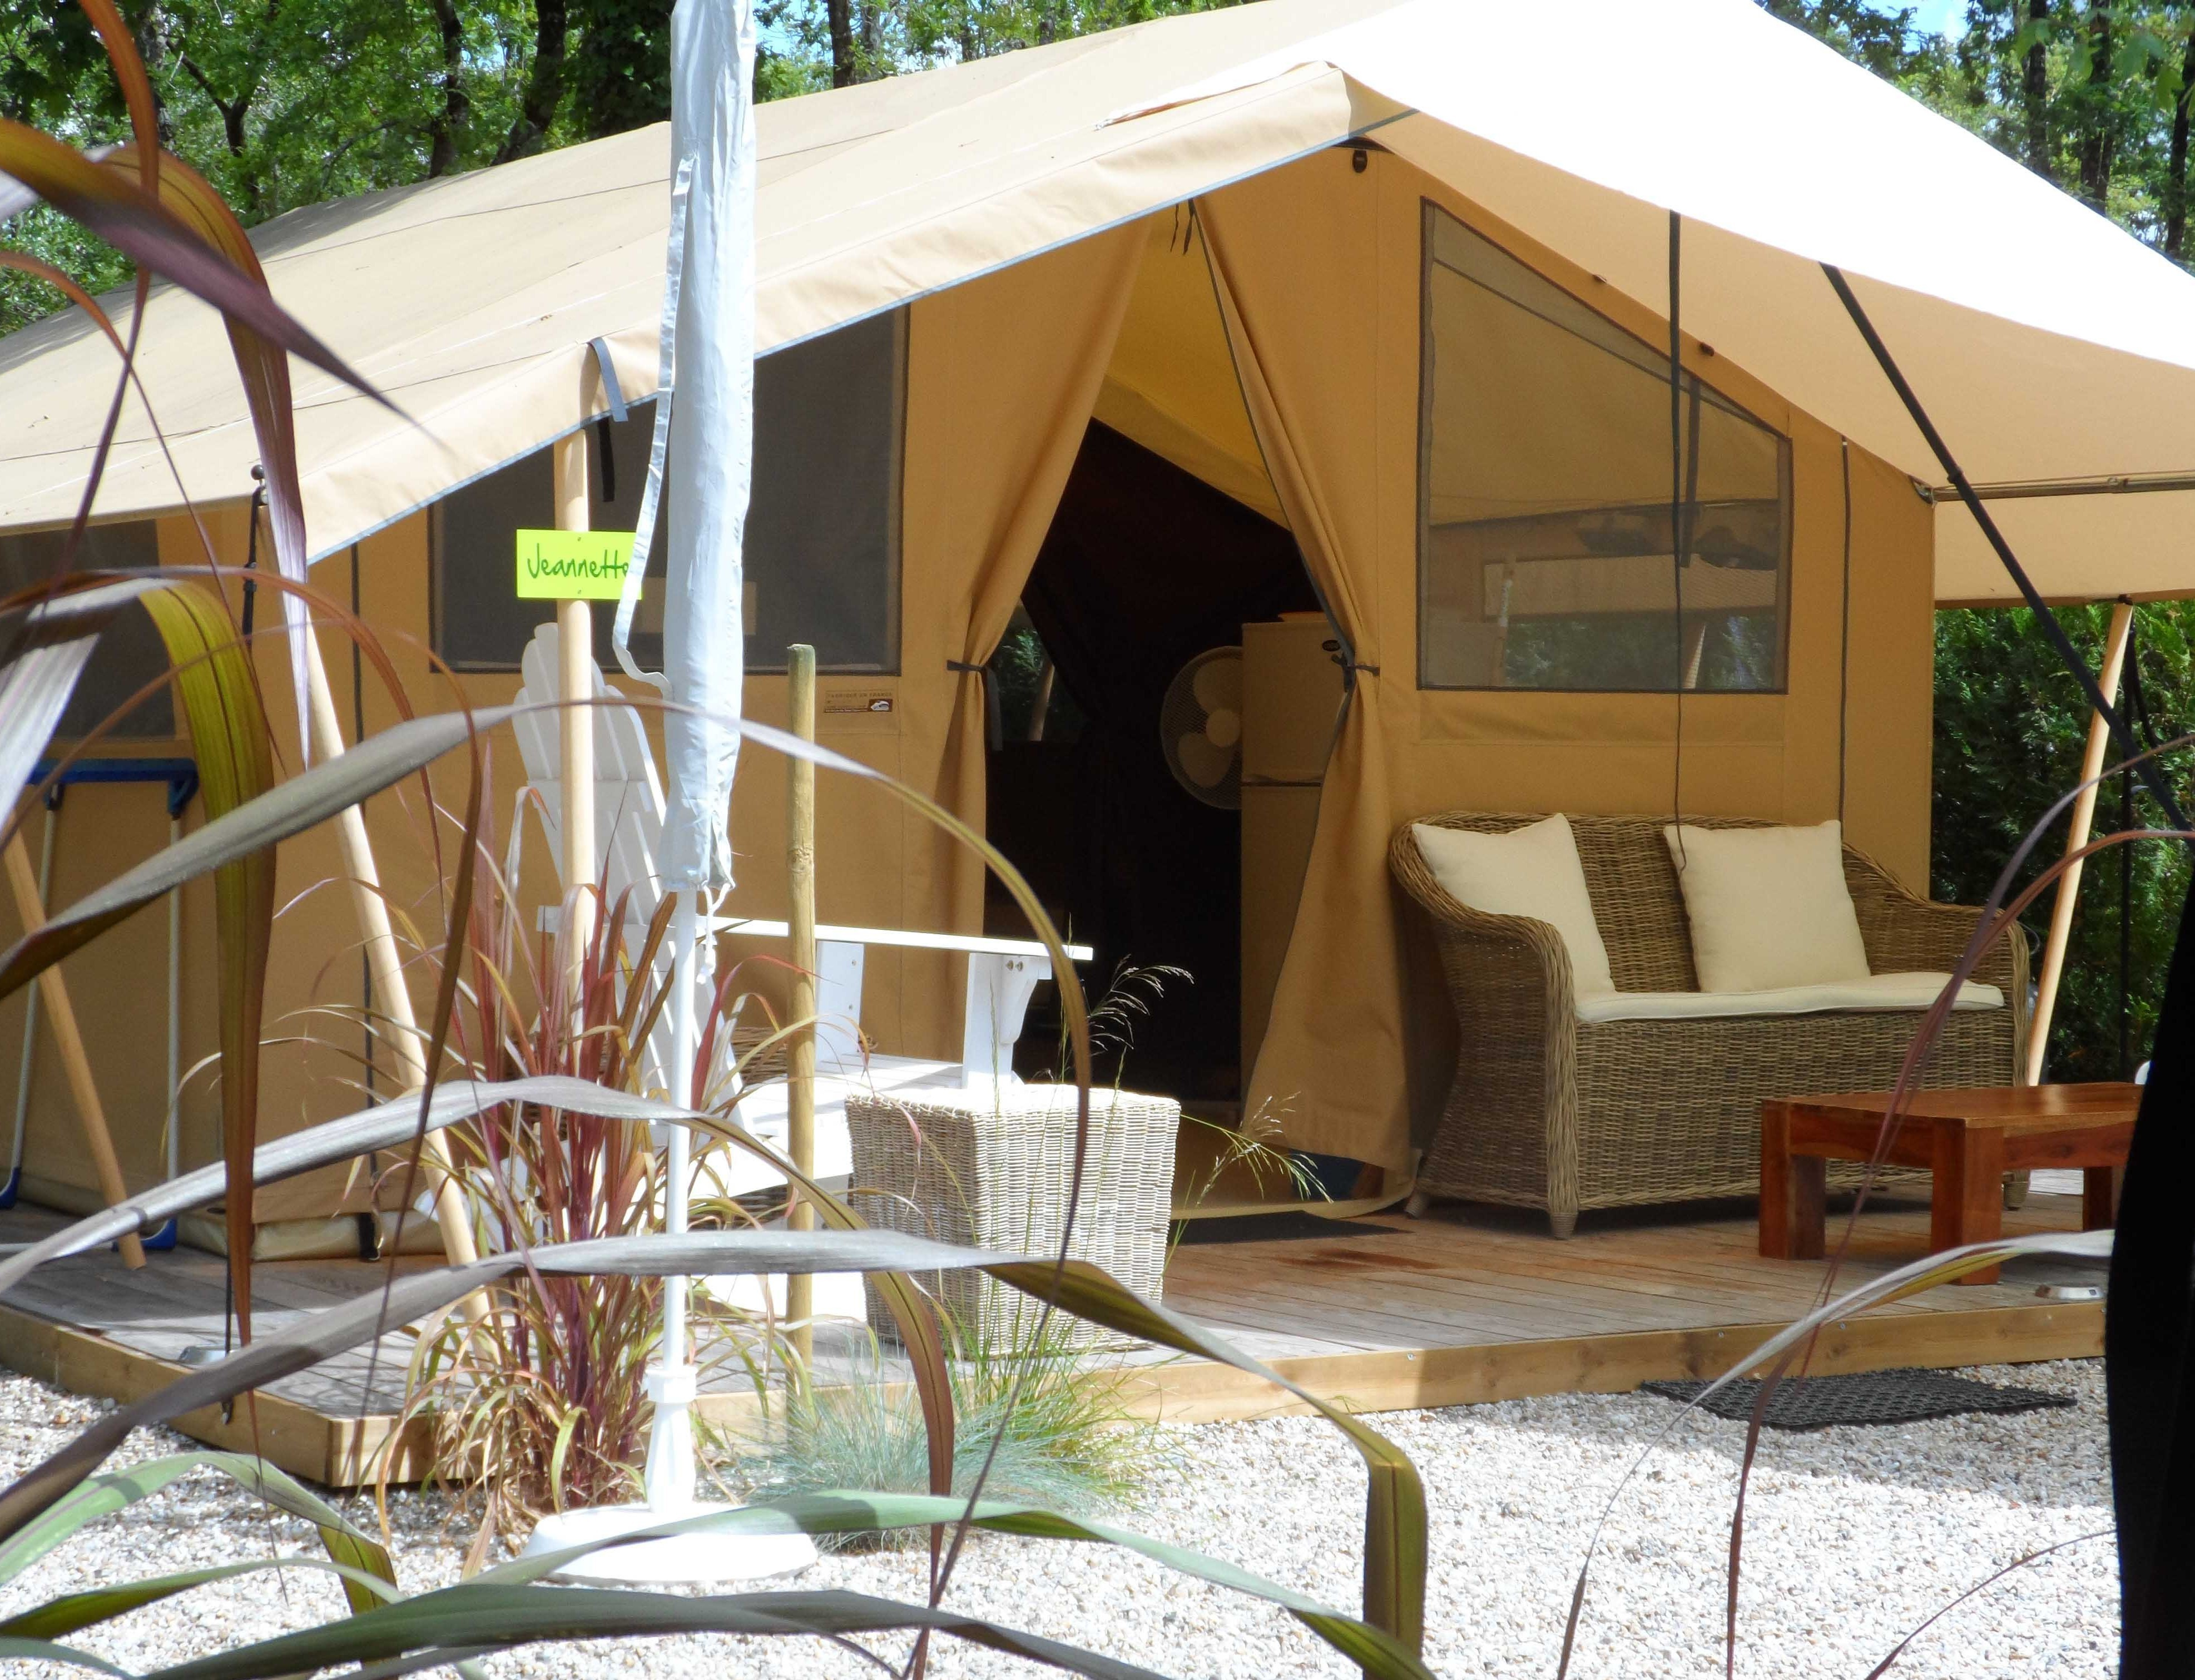 4 people furnished tent